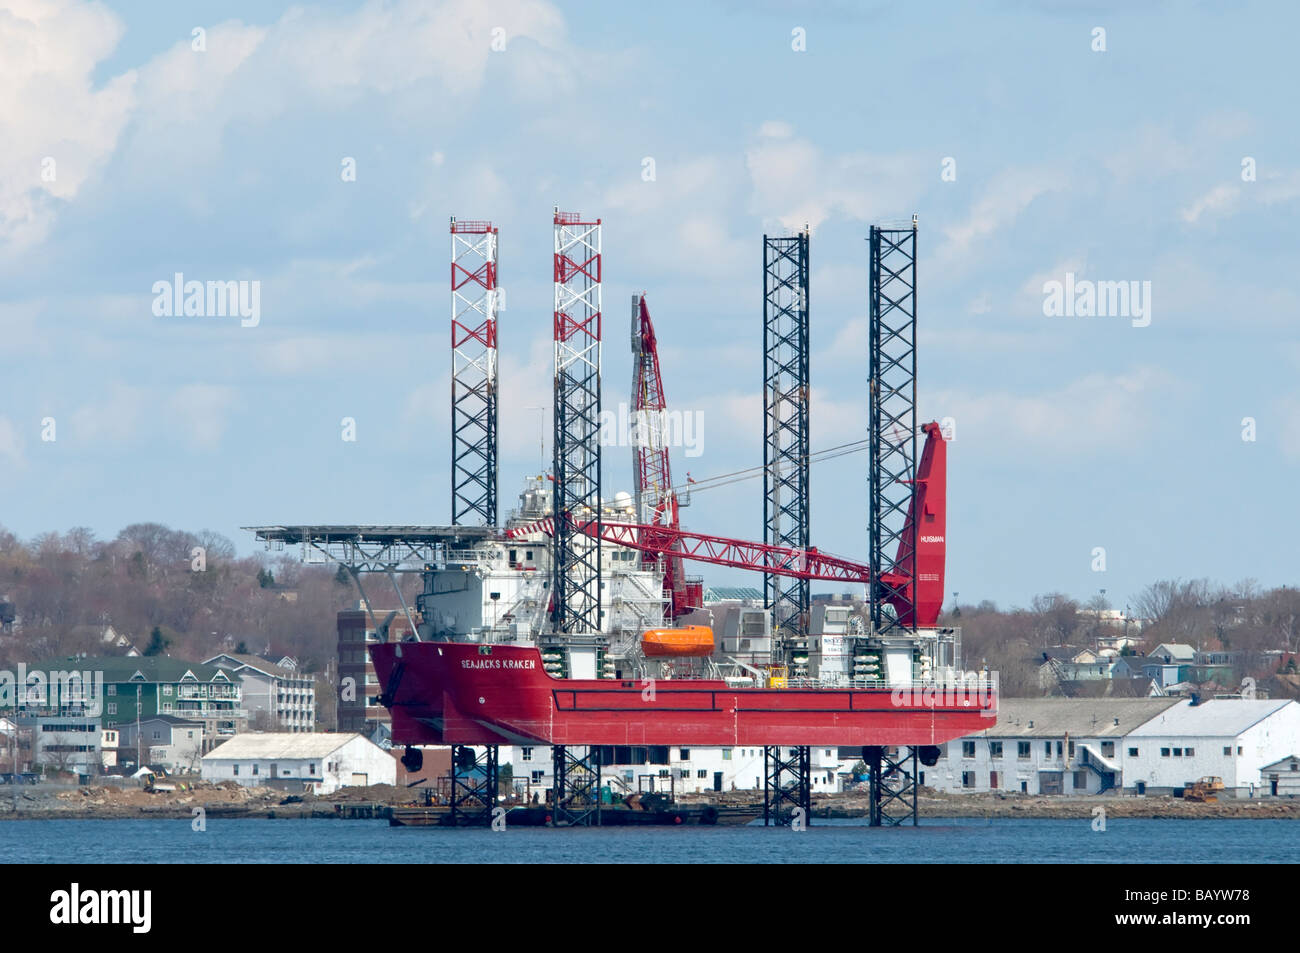 Self Propelled liftboat in Halifax Harbour - Stock Image